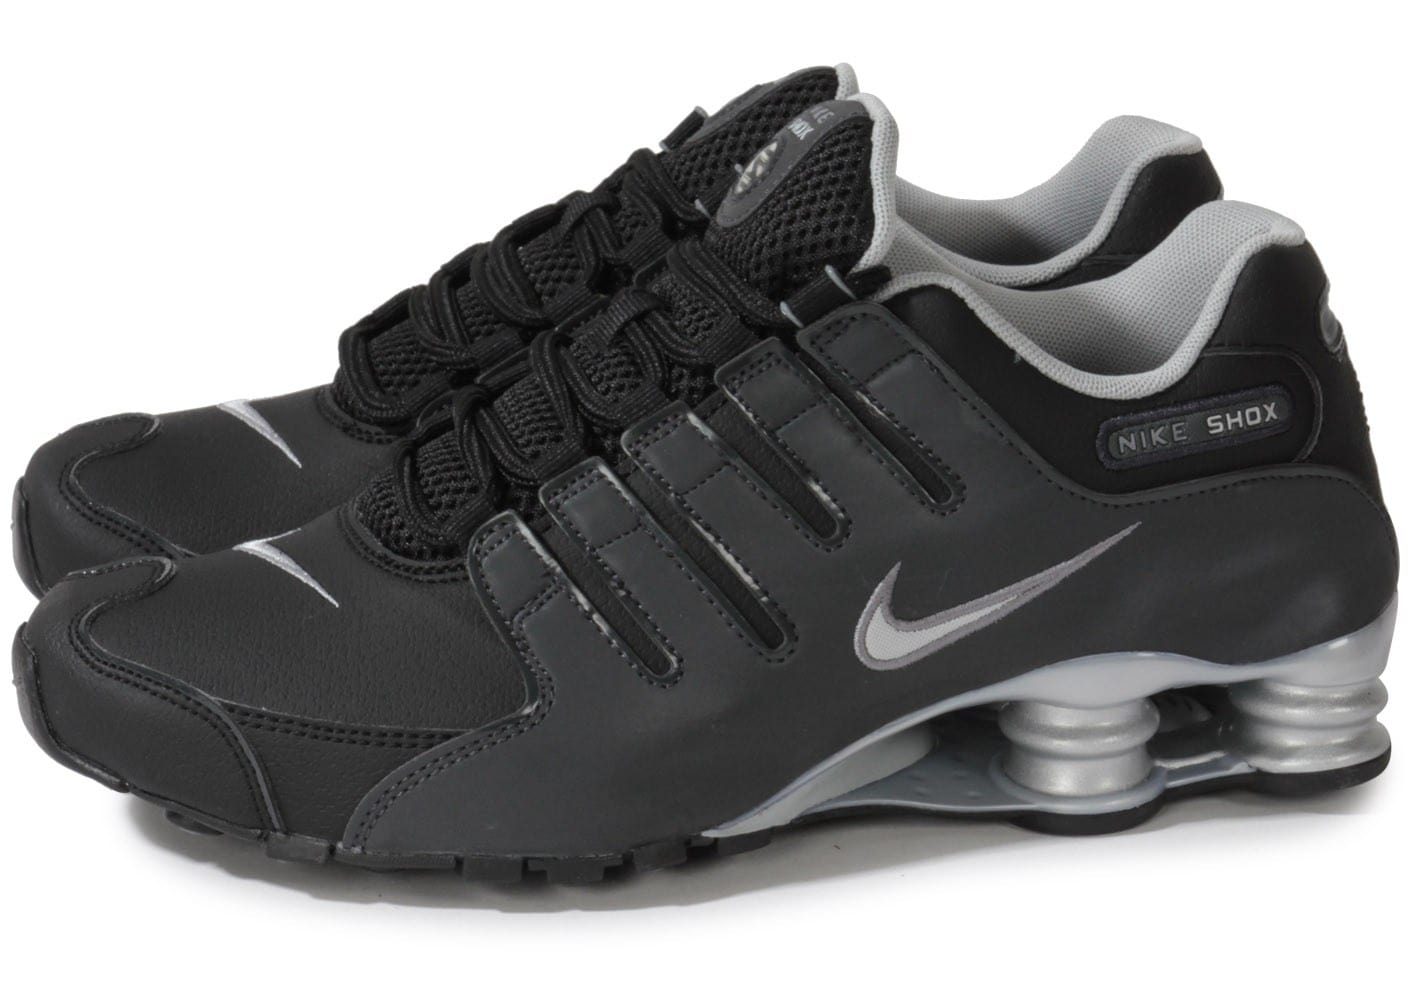 nike shox nz noire silver chaussures homme chausport. Black Bedroom Furniture Sets. Home Design Ideas